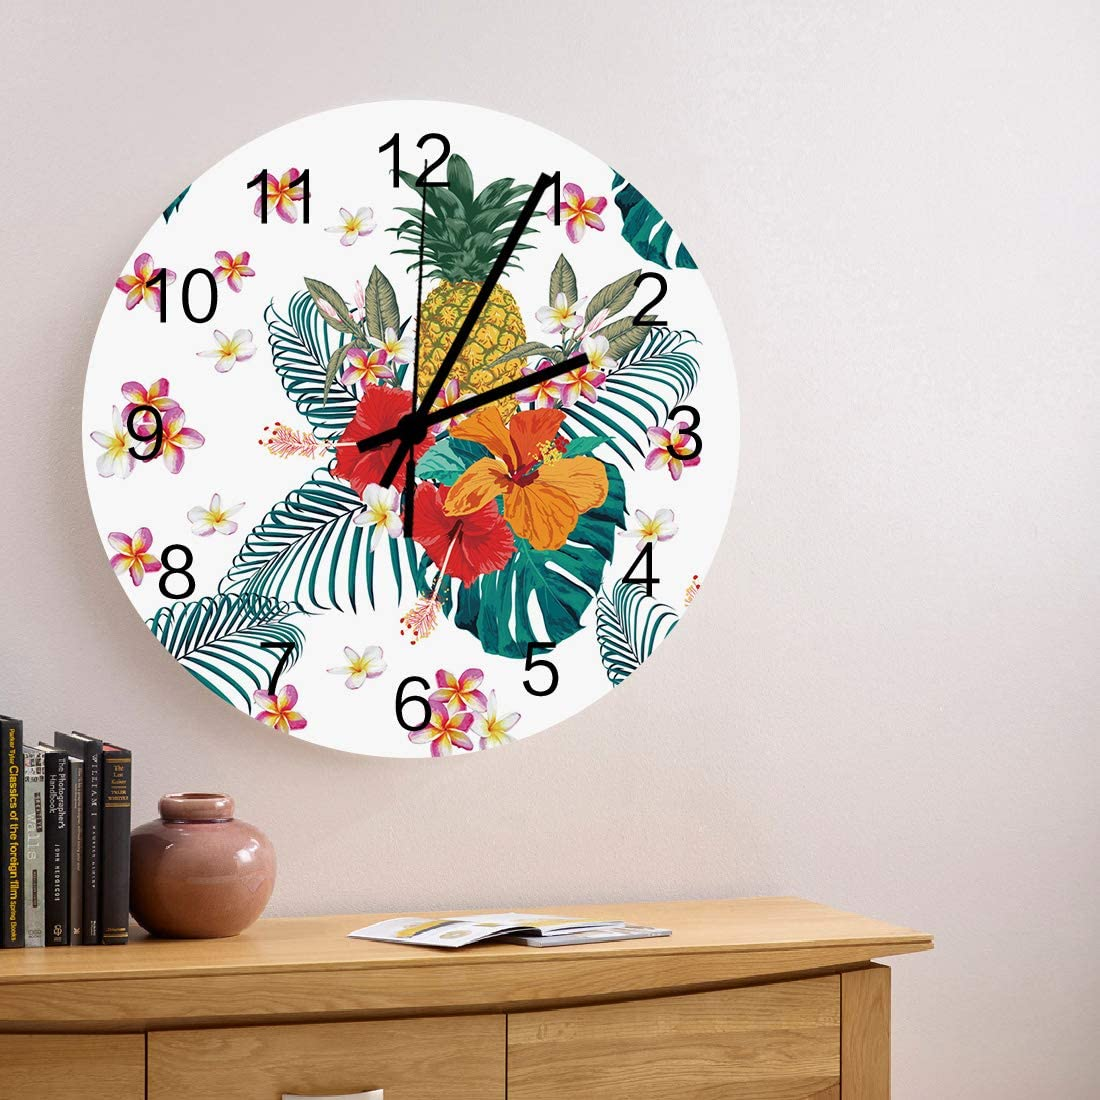 safety MuswannaA 12 Inch Silent Non-Ticking Round Wooden Red Clock Wall wholesale